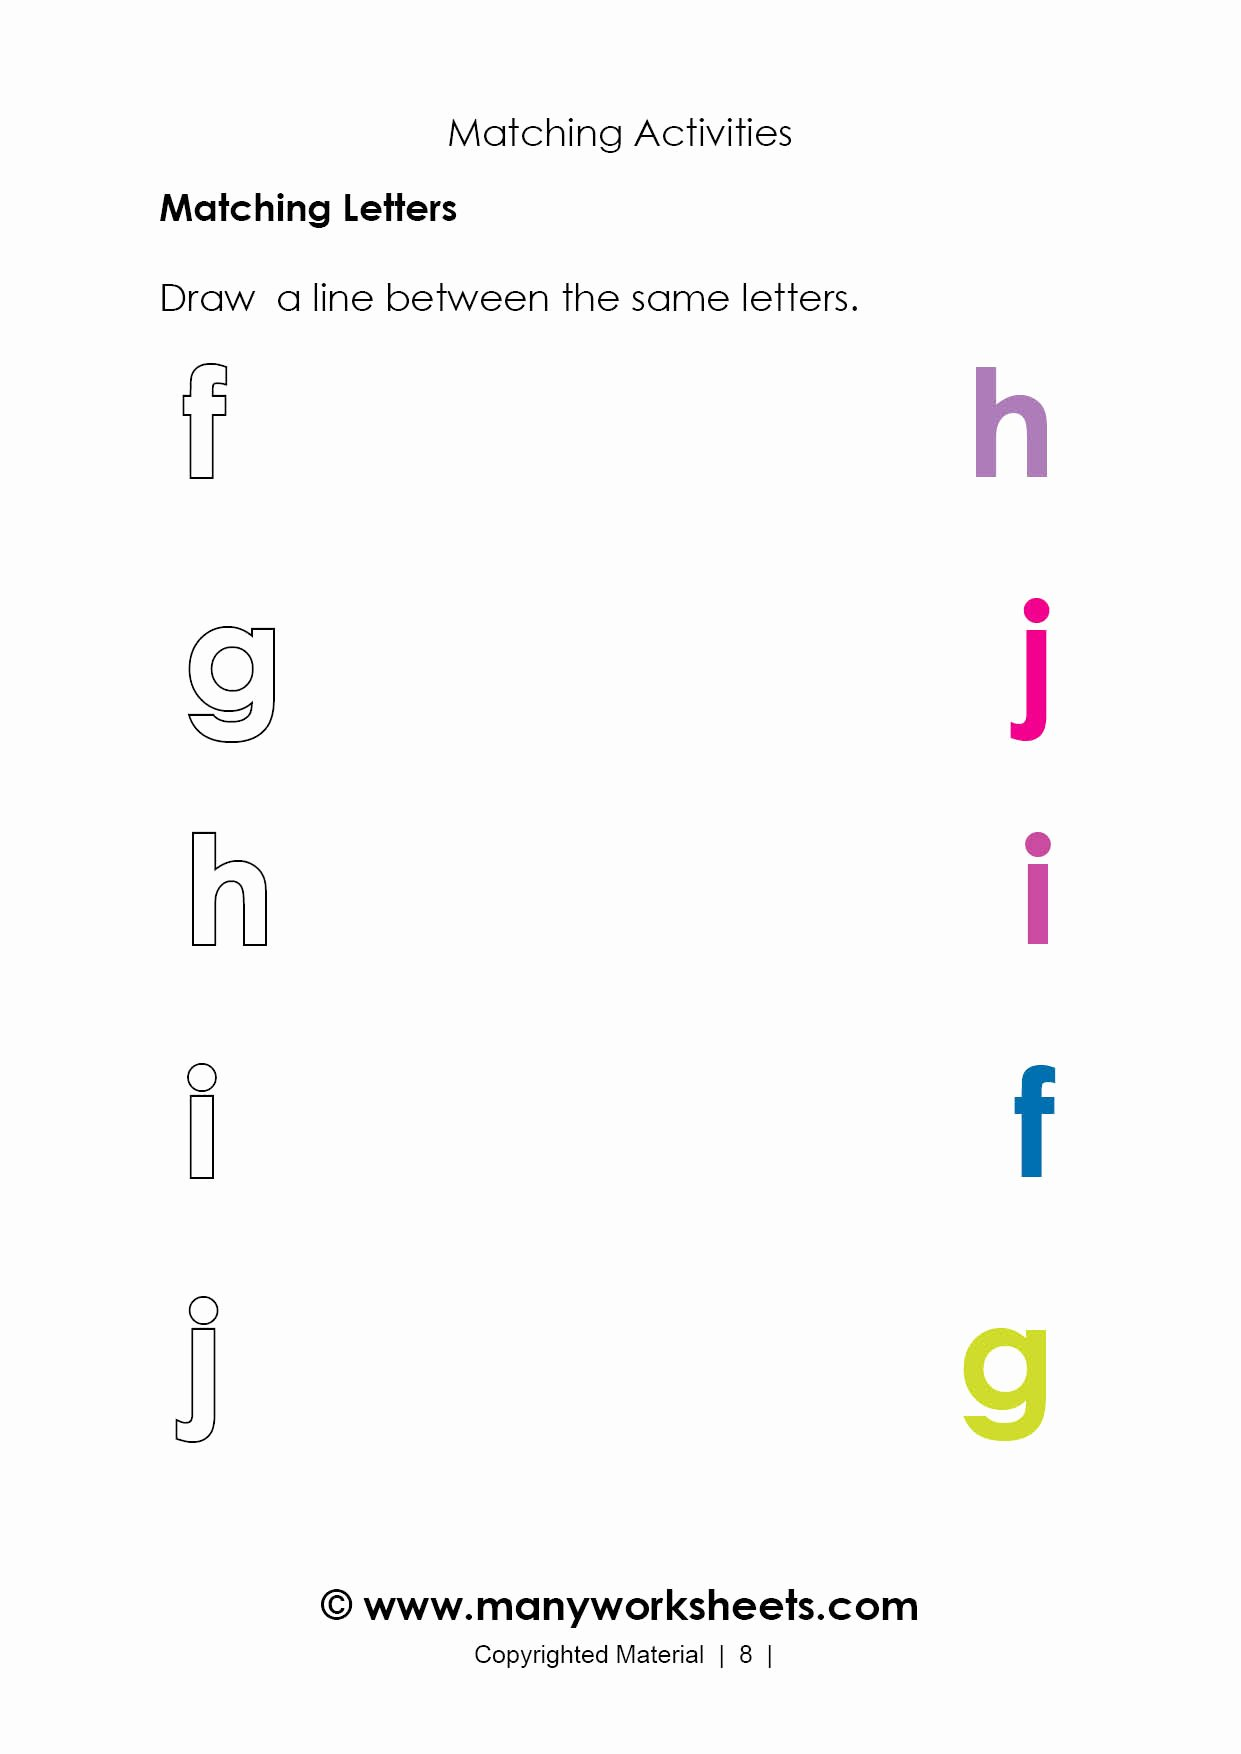 Matching Letters Worksheets for Preschoolers Unique Matching Letters Worksheet for Kindergarten